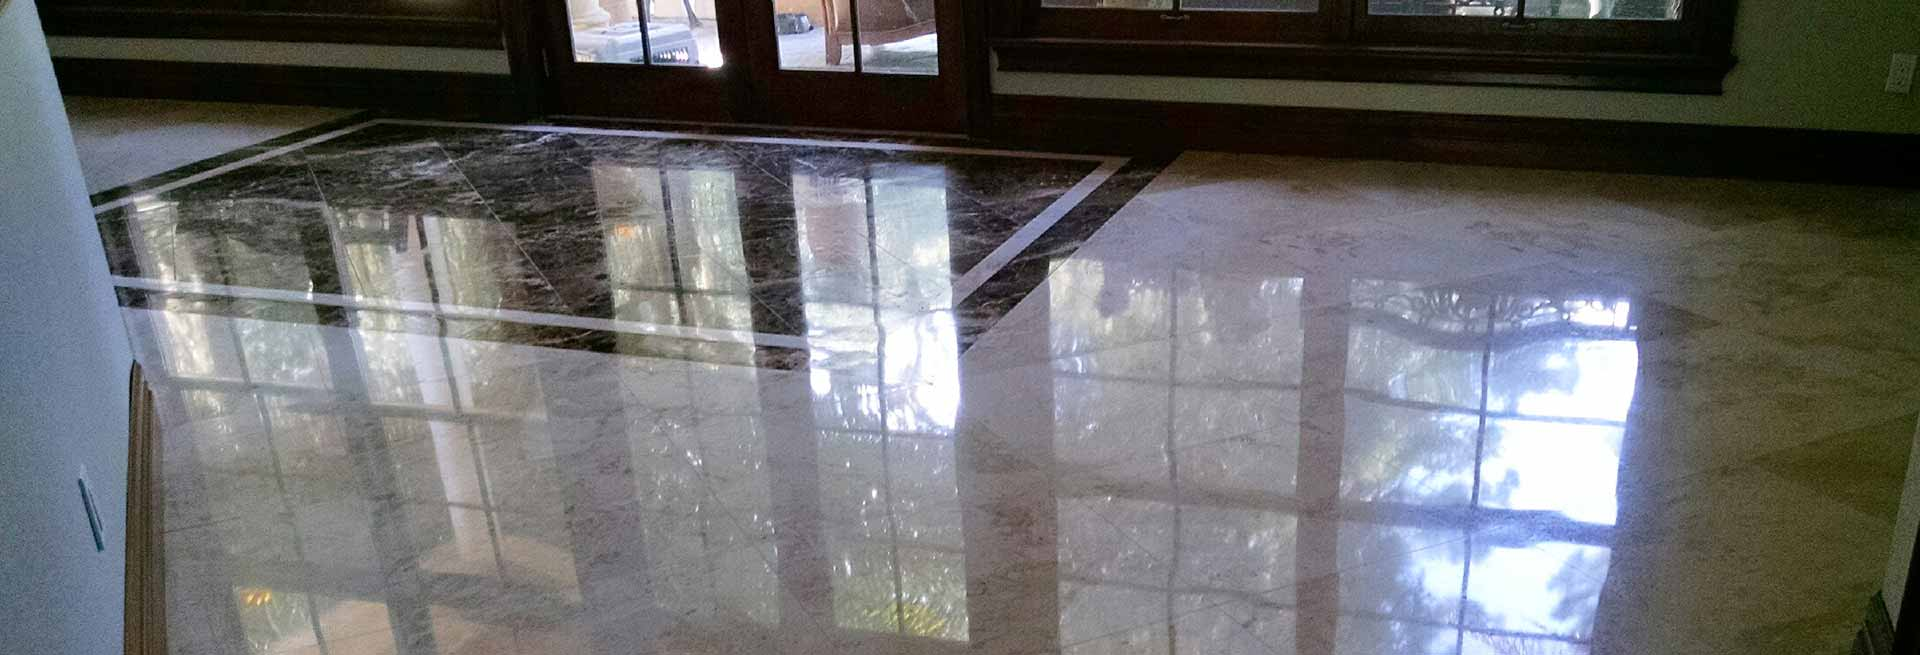 Gainesville Natural Stone Restoration & Tile Cleaning Experts